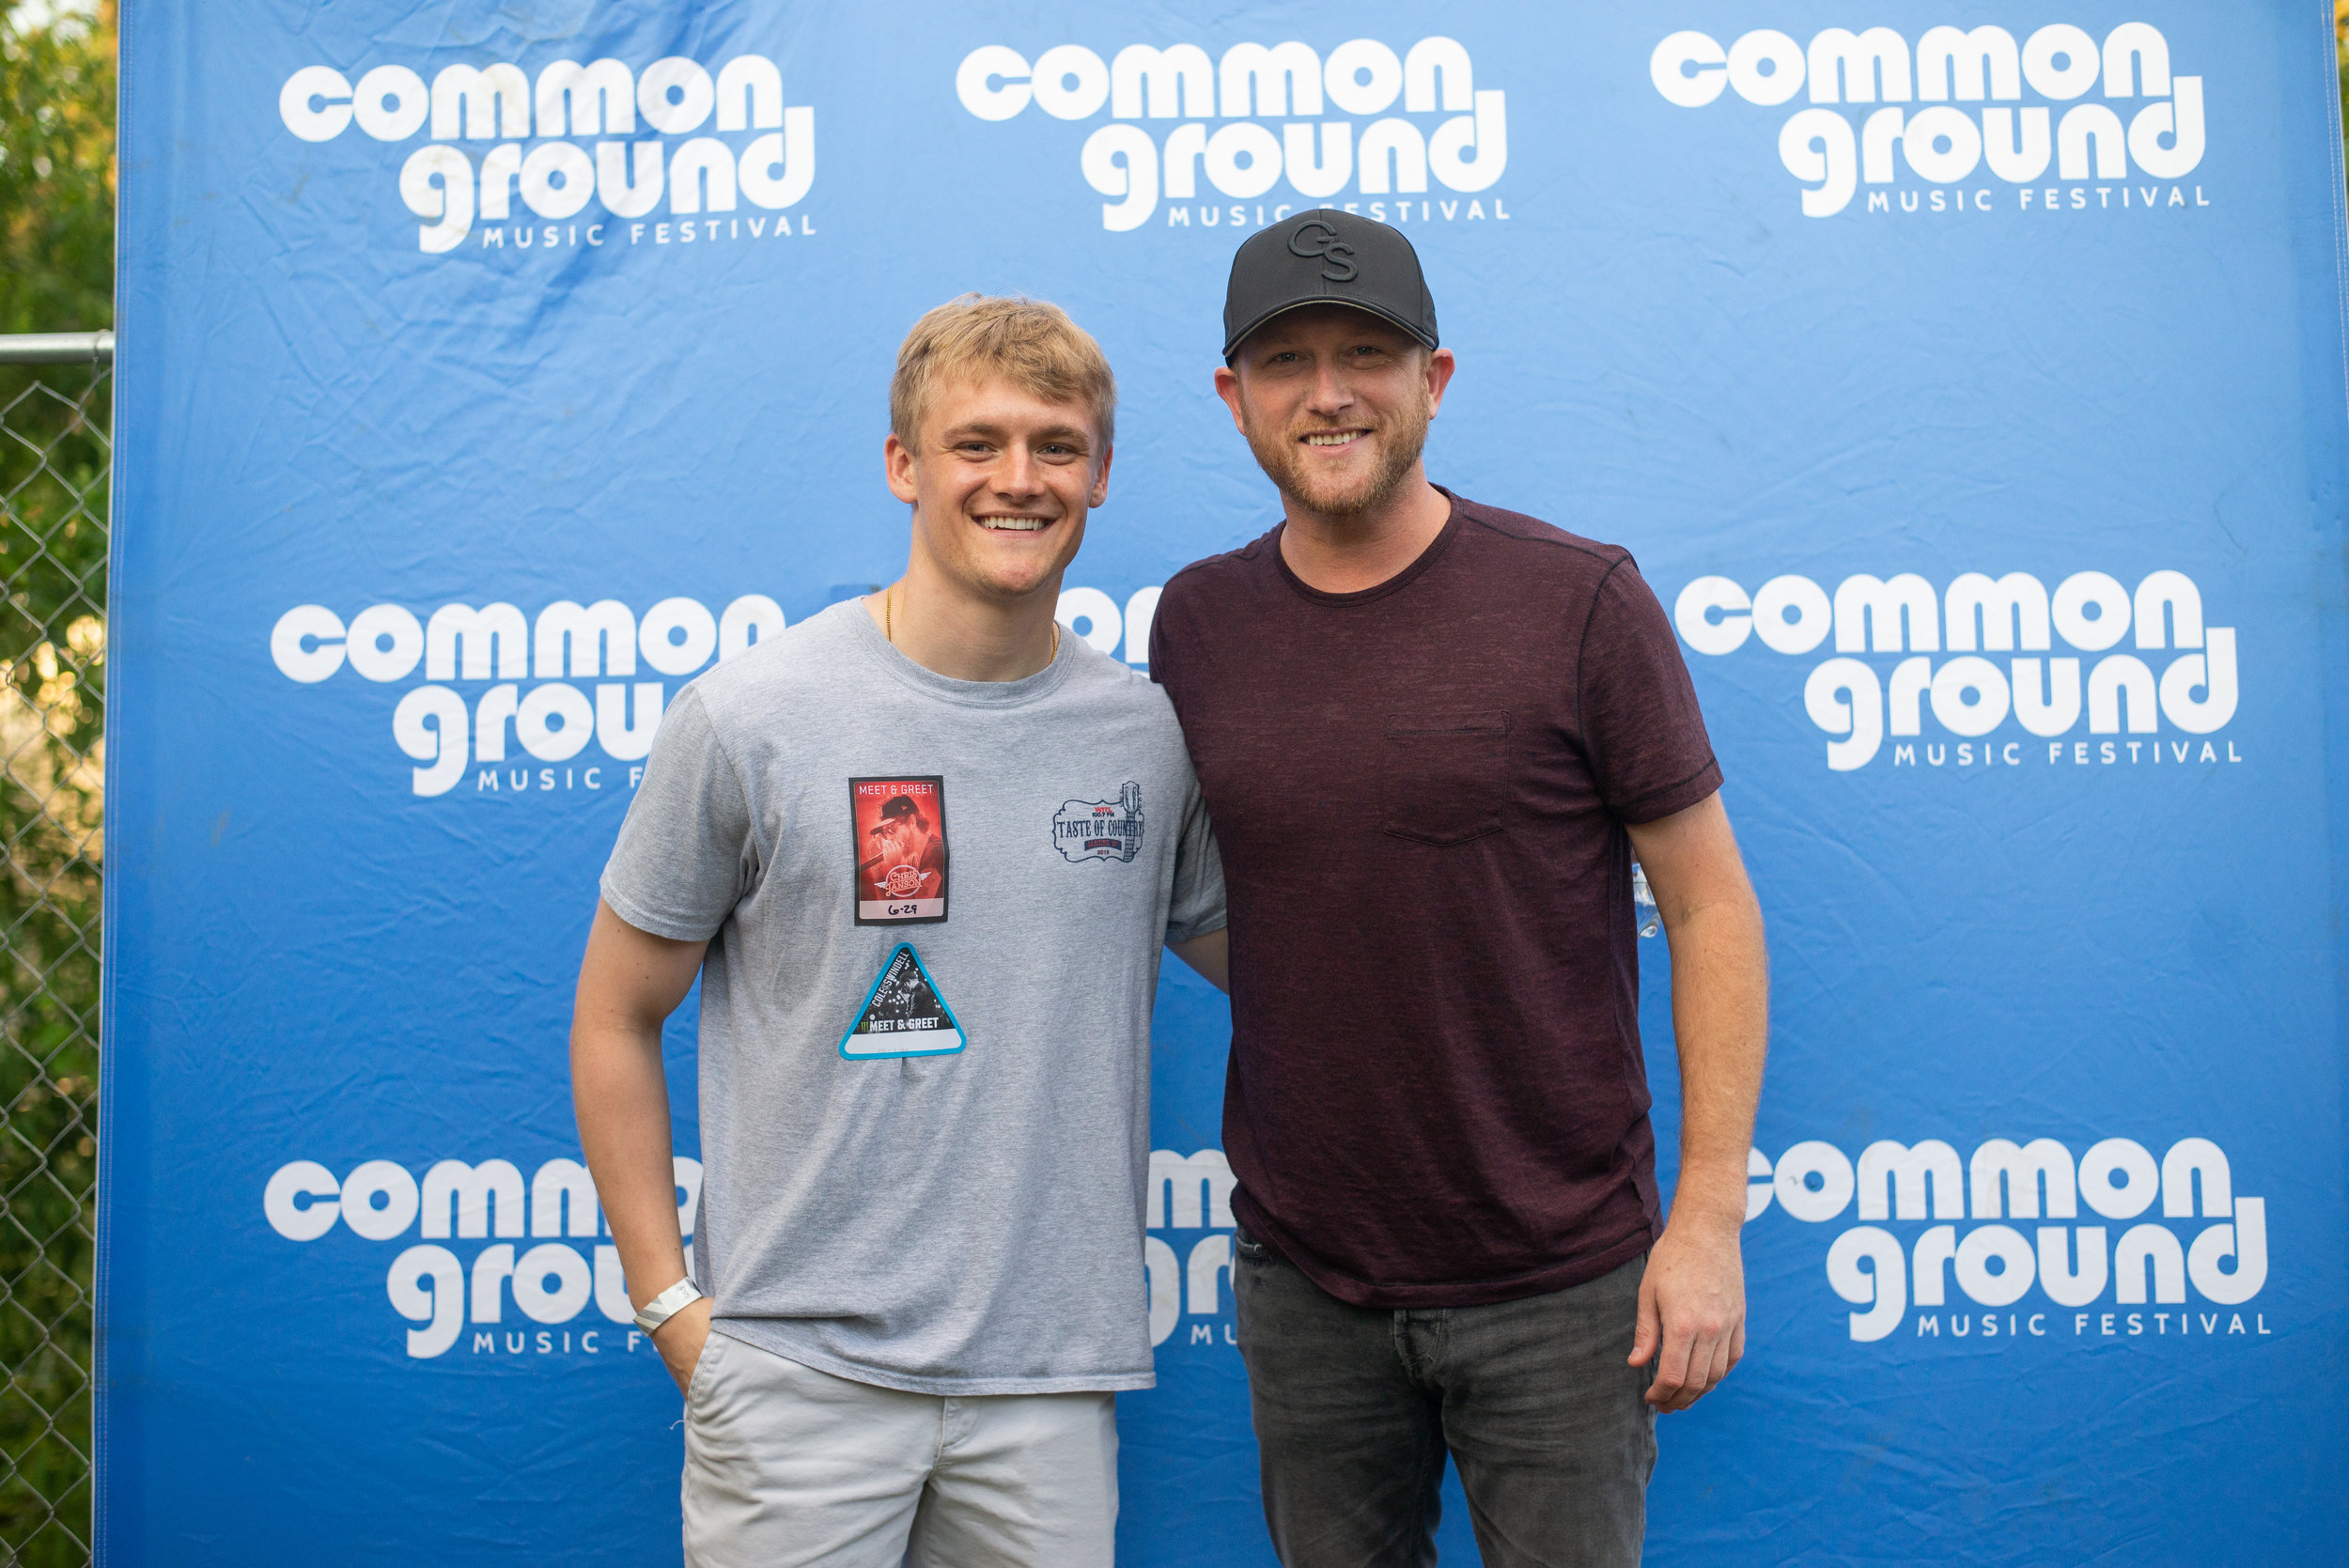 Claire Abendroth_Meet&Greet_ColeSwindell-16.jpg